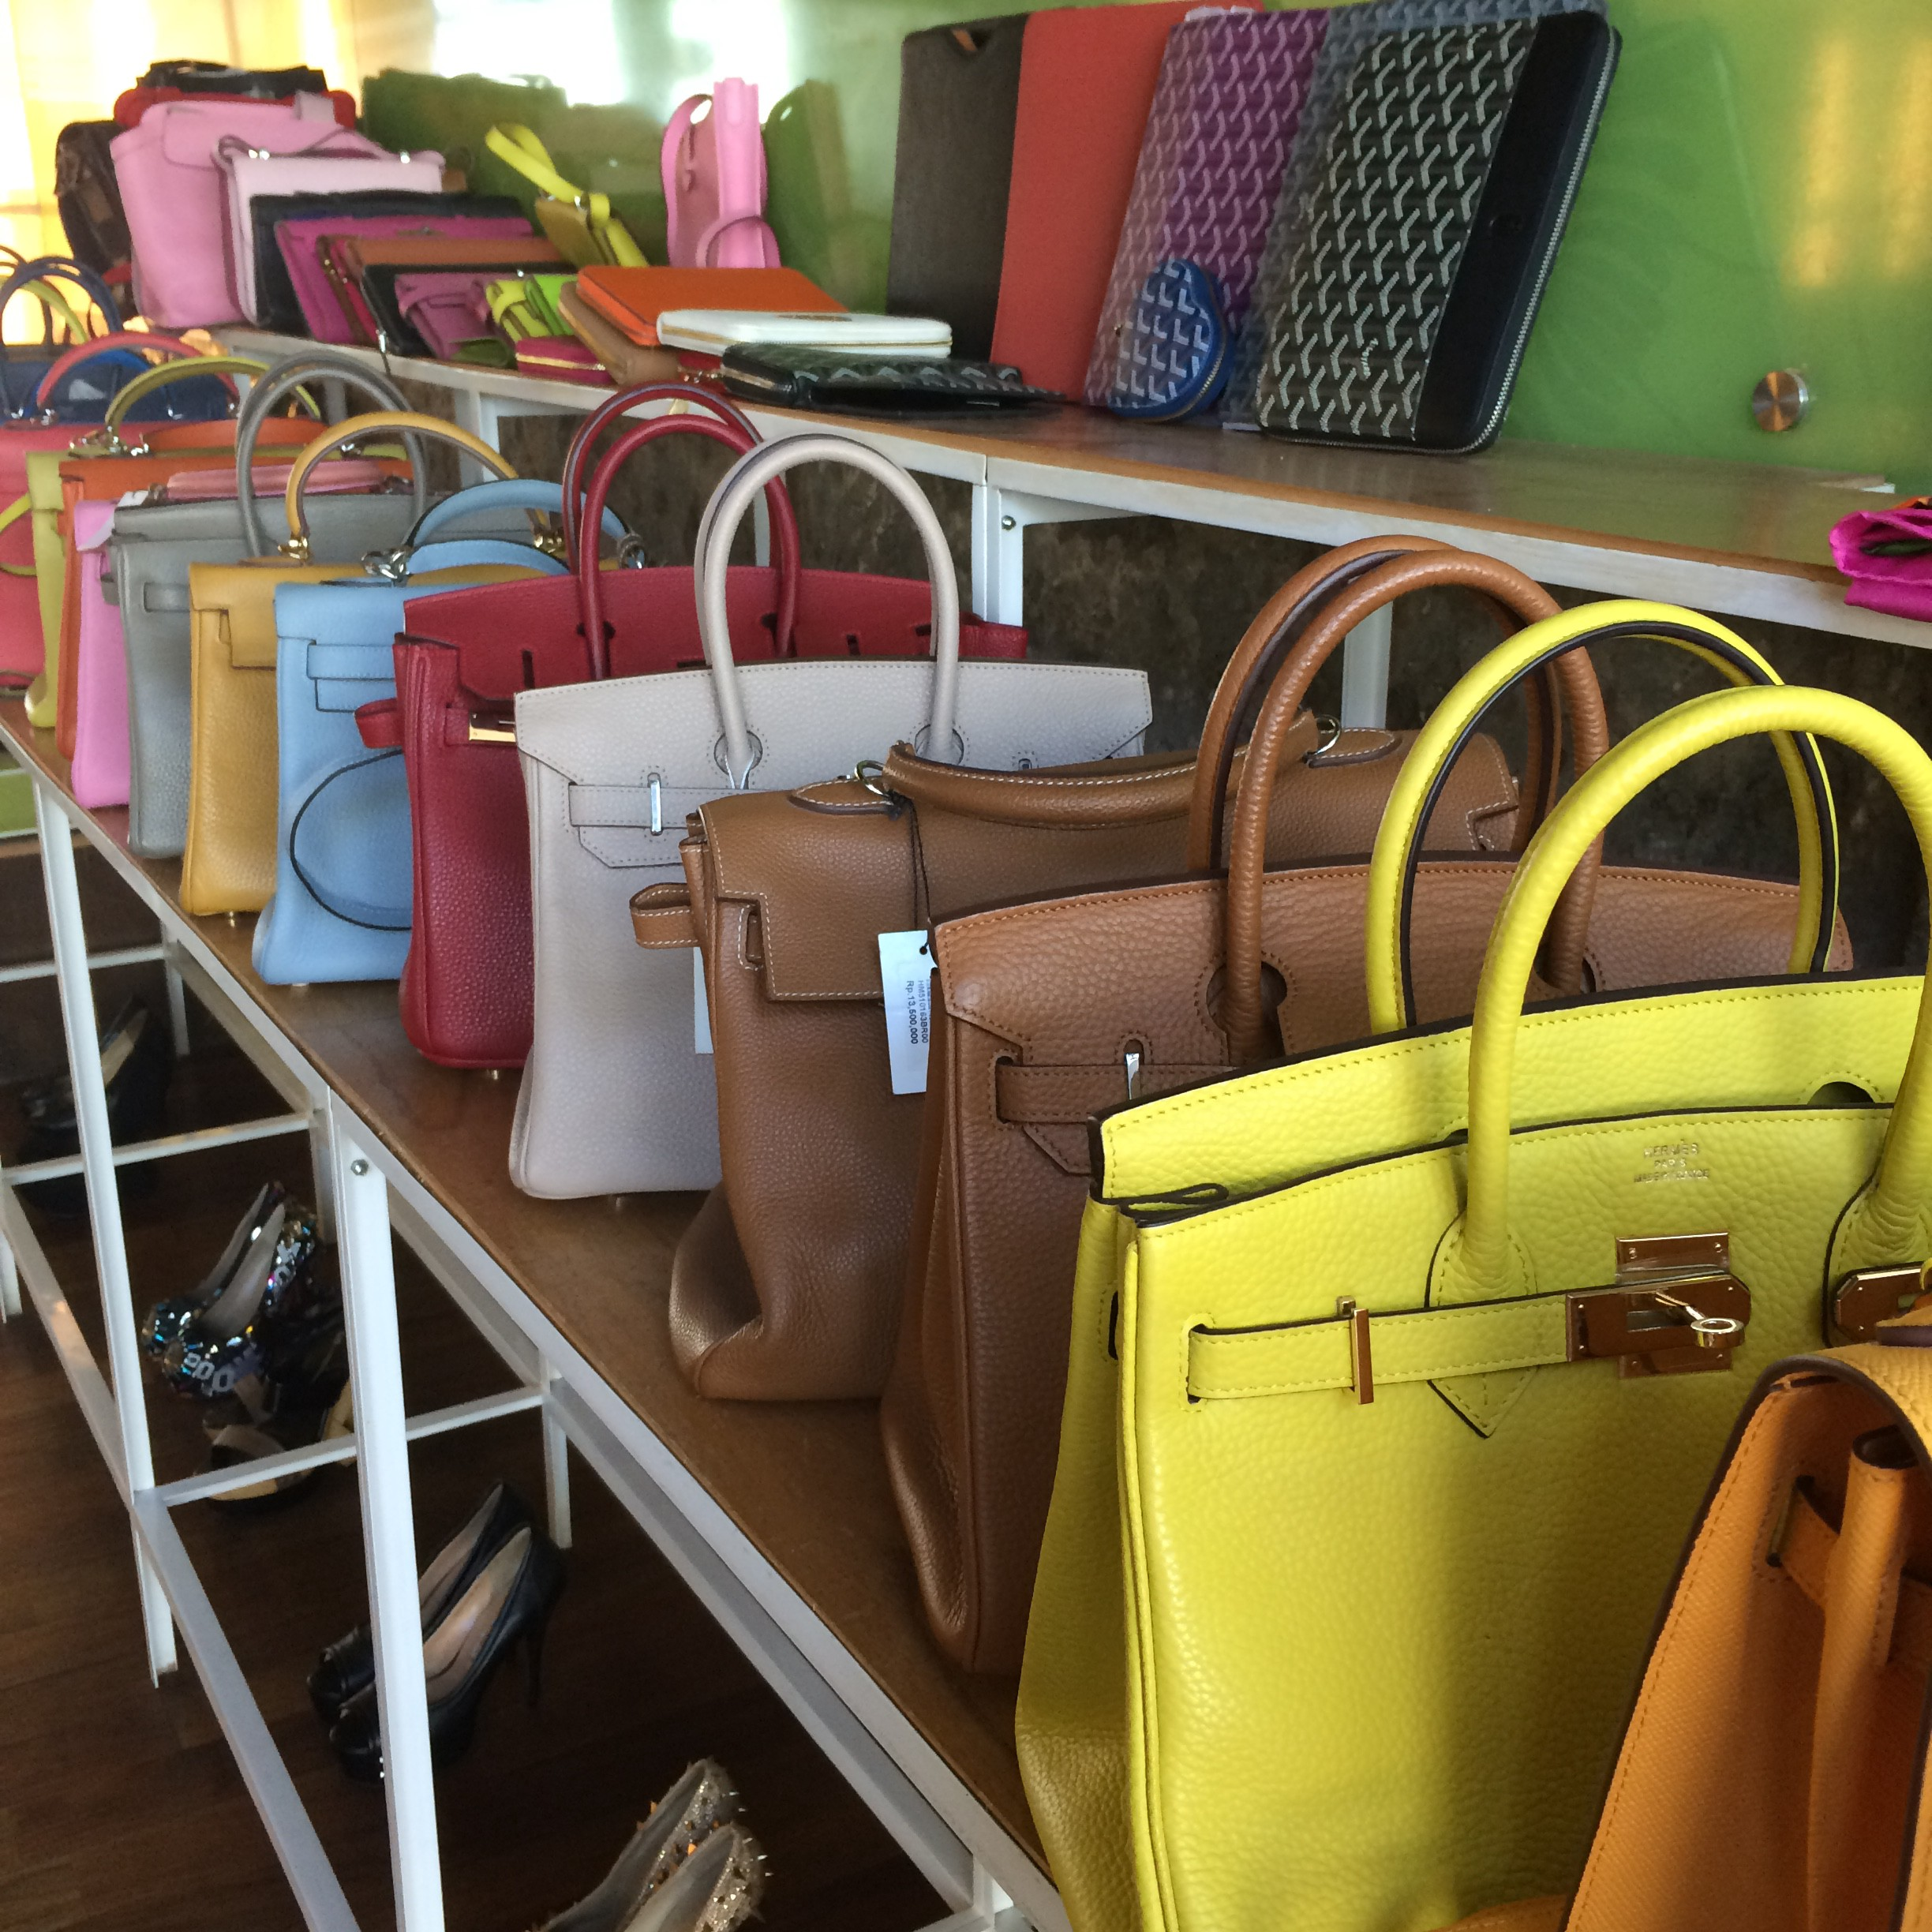 The Truth About Counterfeit Luxury Handbags - Becca Risa Luna - Medium